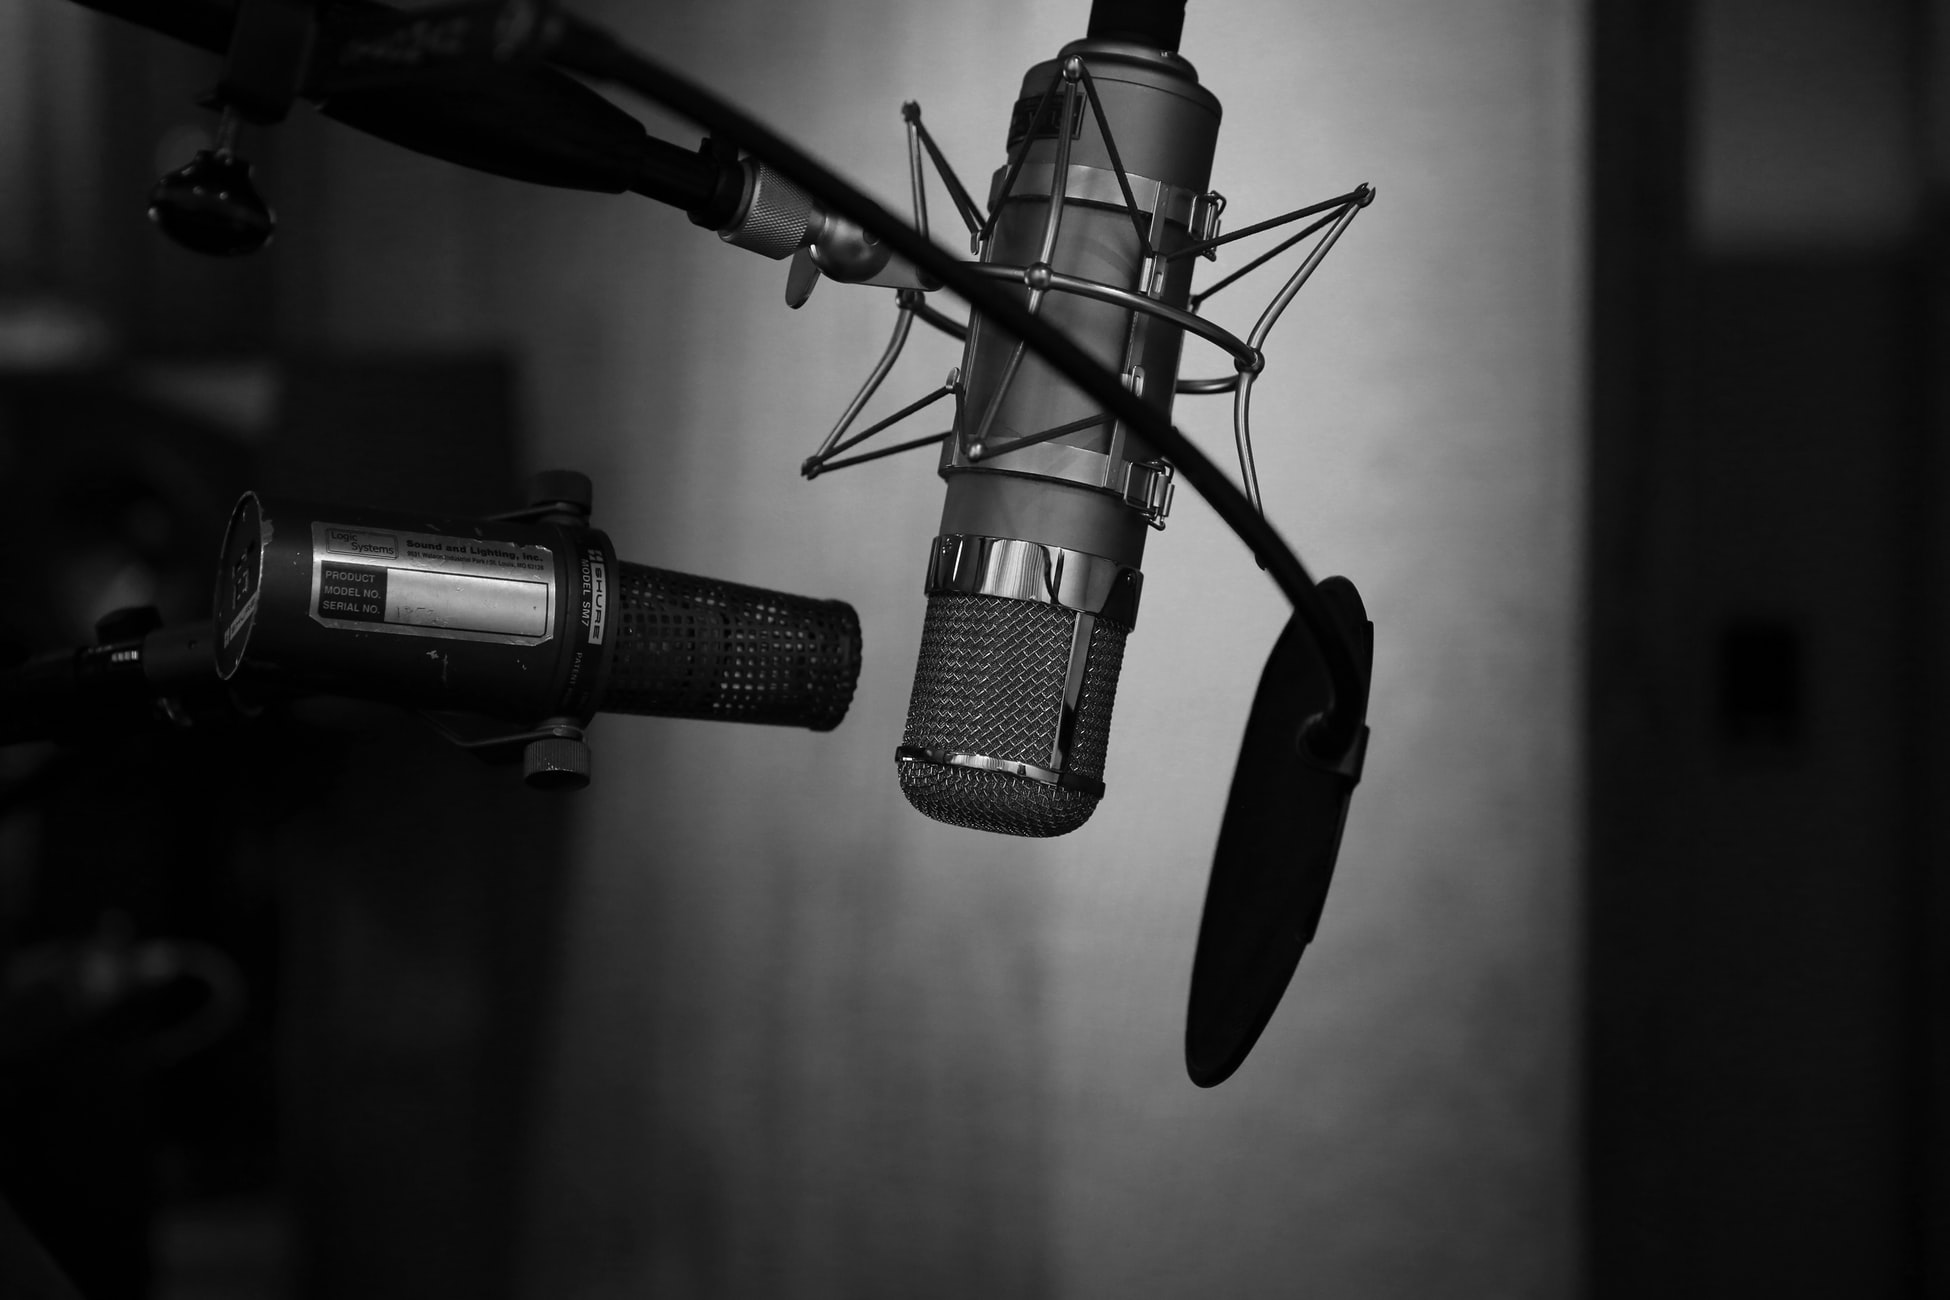 Black and white image shows a microphone in a recording studio